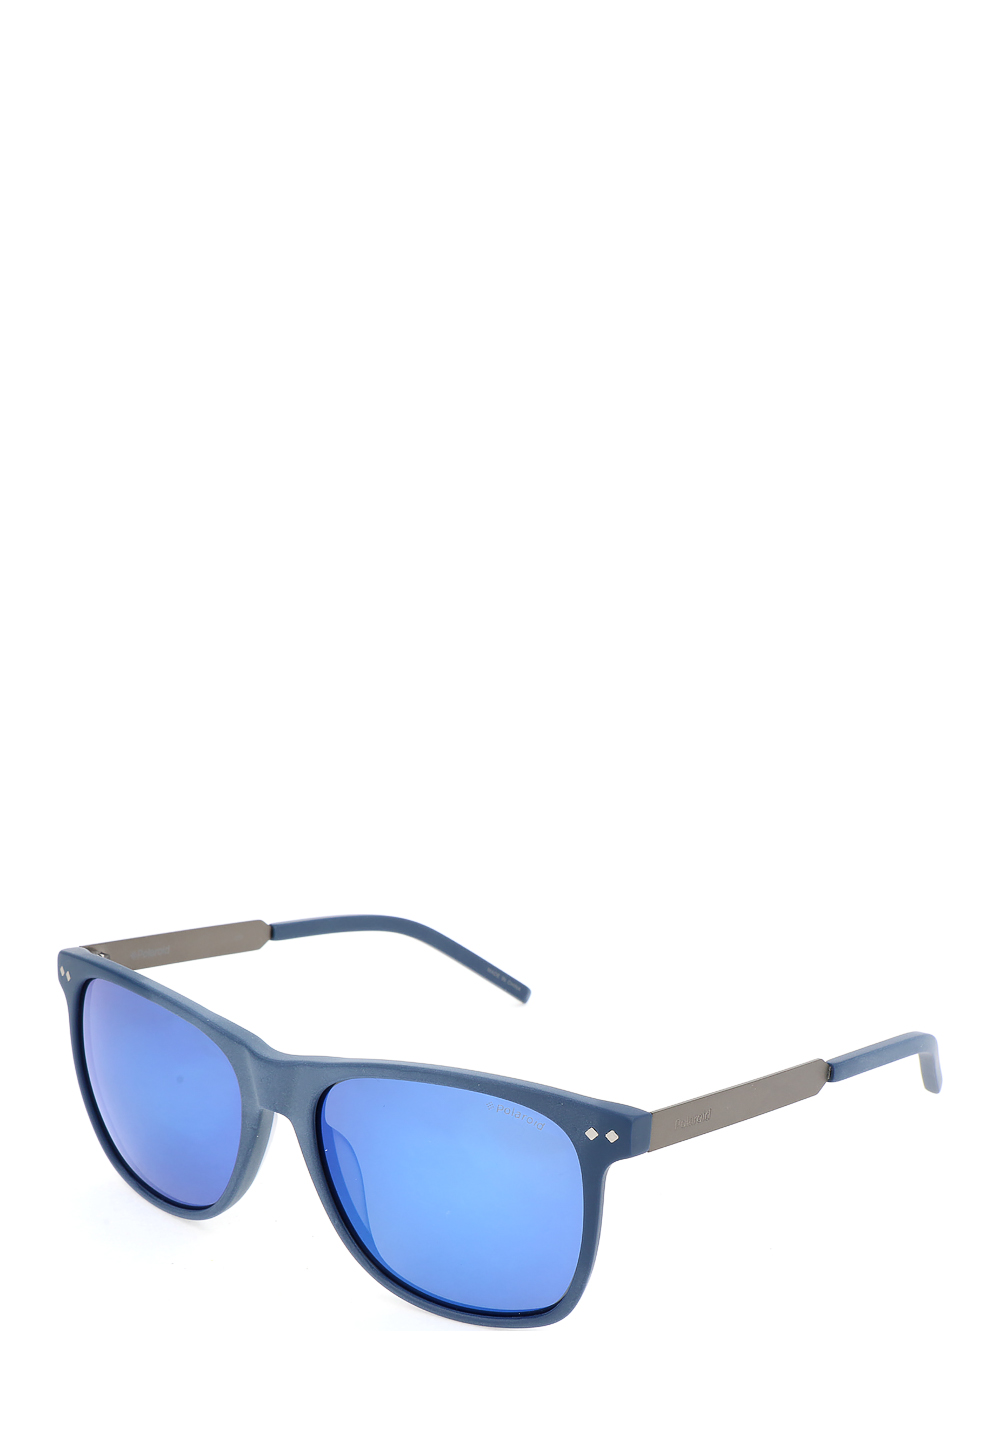 Sonnenbrille Pld1028/U/S, polarized, Uv400, blue blau